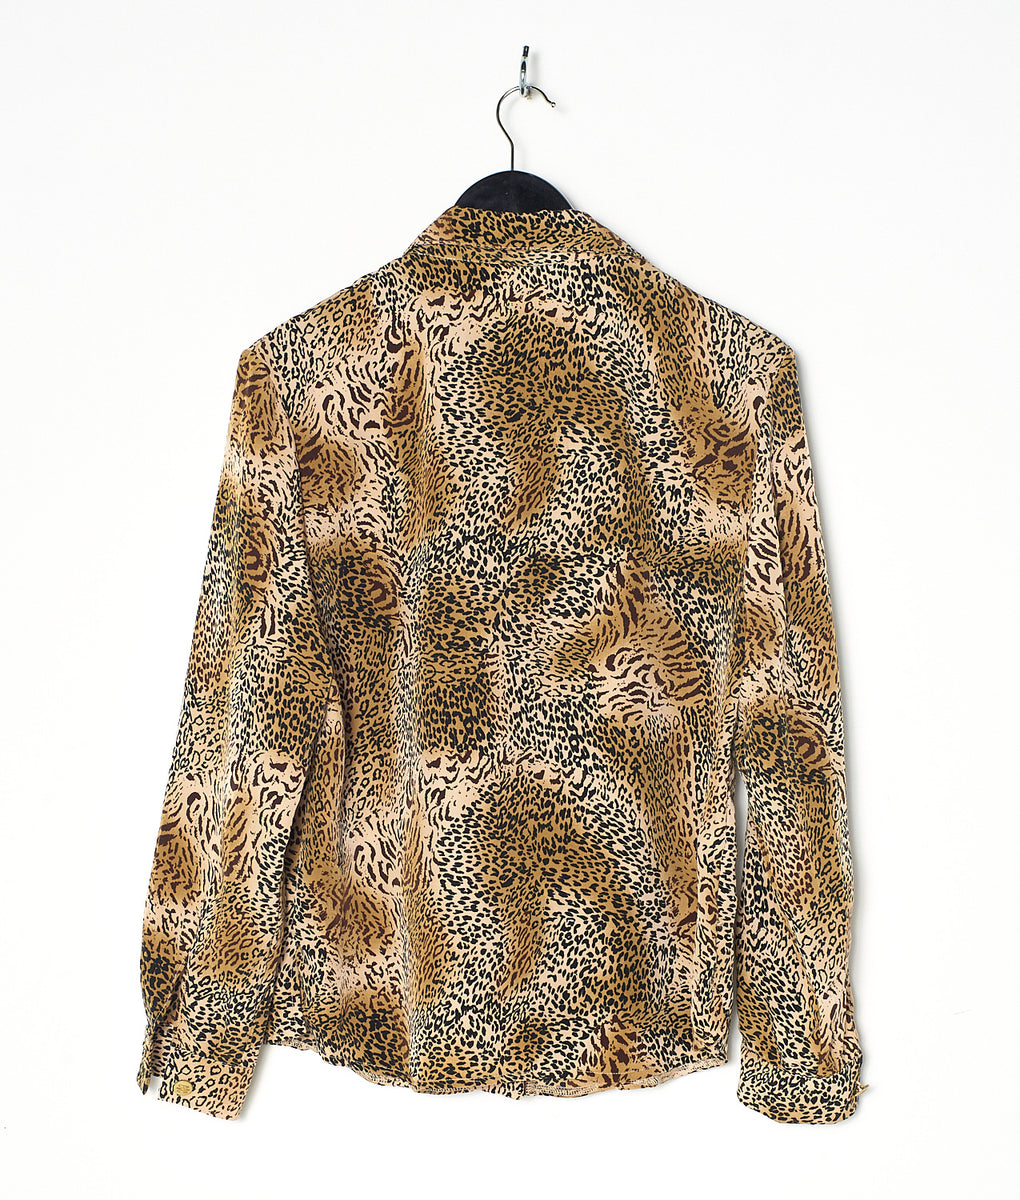 Cheetah L/S Shirt (XS)